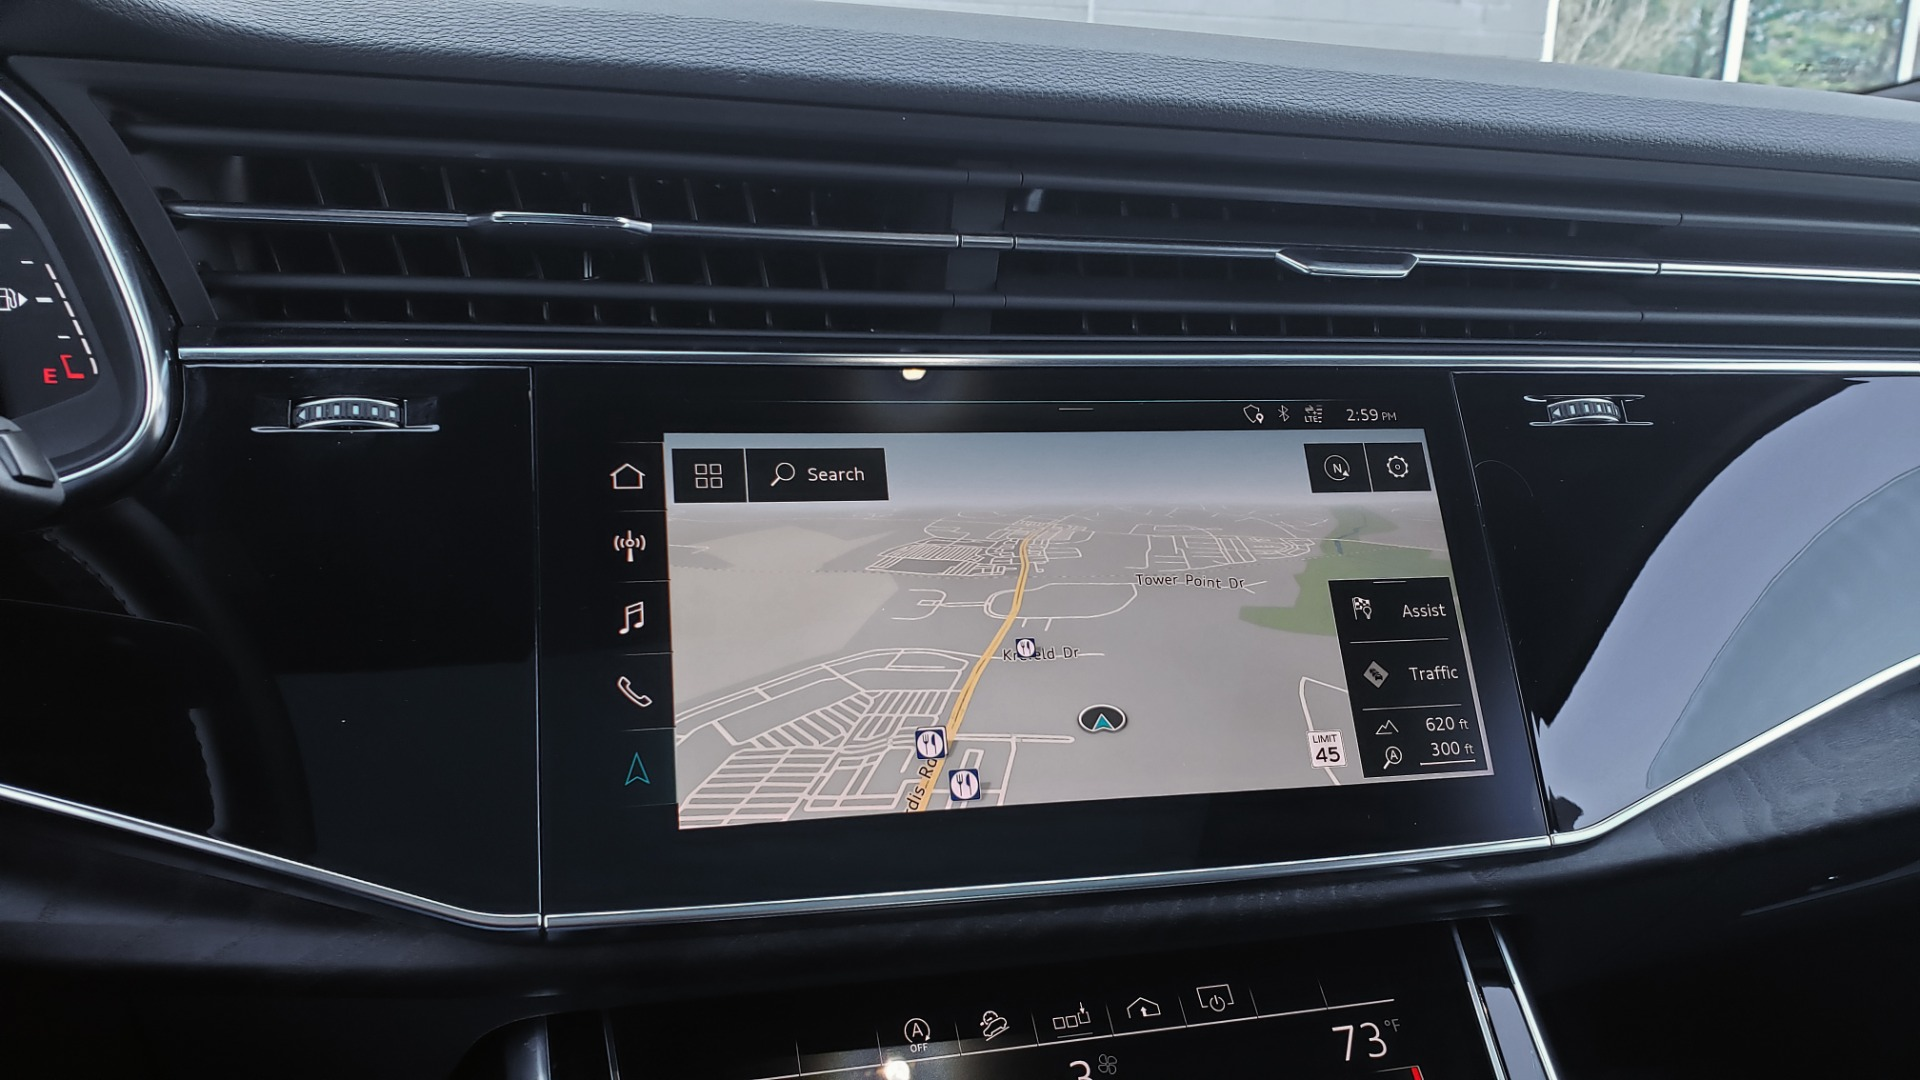 Used 2020 Audi Q7 PREMIUM PLUS / NAV / SUNROOF / 3-ROW / REARVIEW for sale $50,695 at Formula Imports in Charlotte NC 28227 48